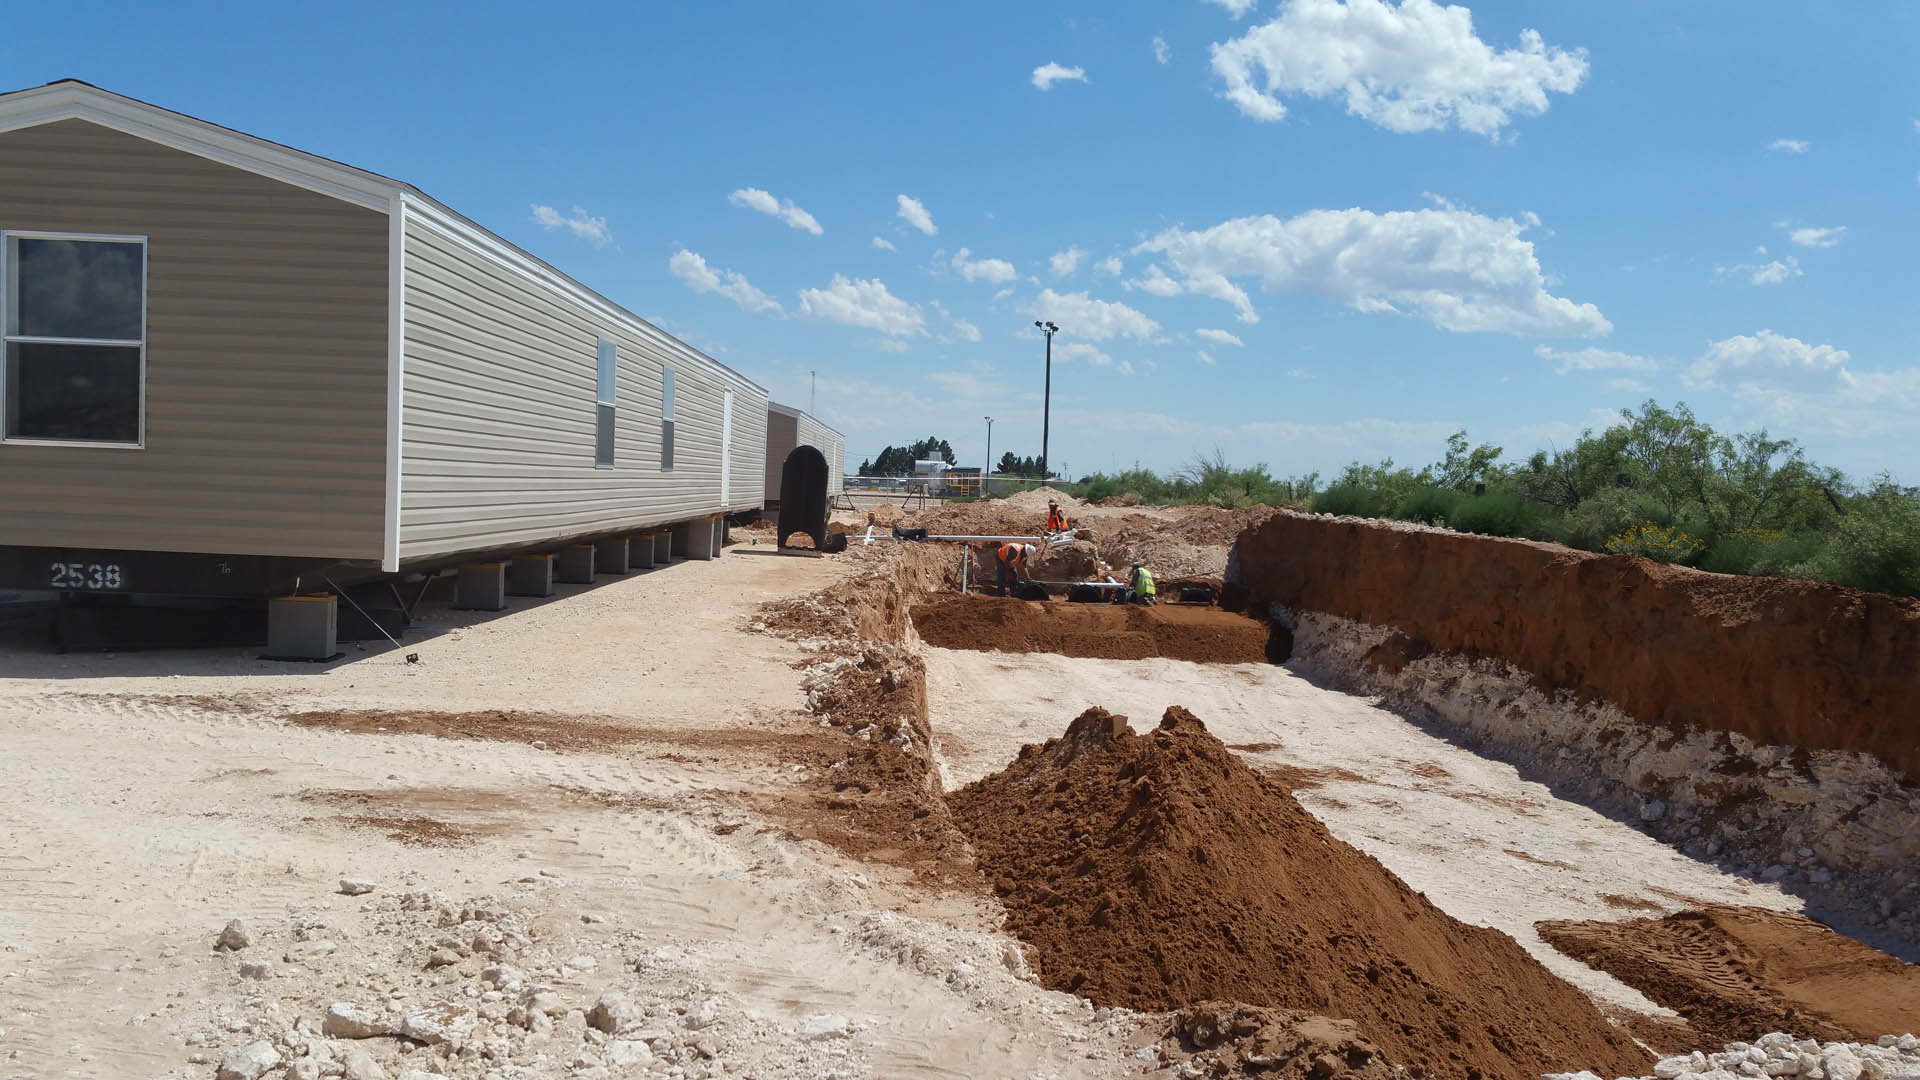 Portable Toilet Rental in West Texas - R & R Construction